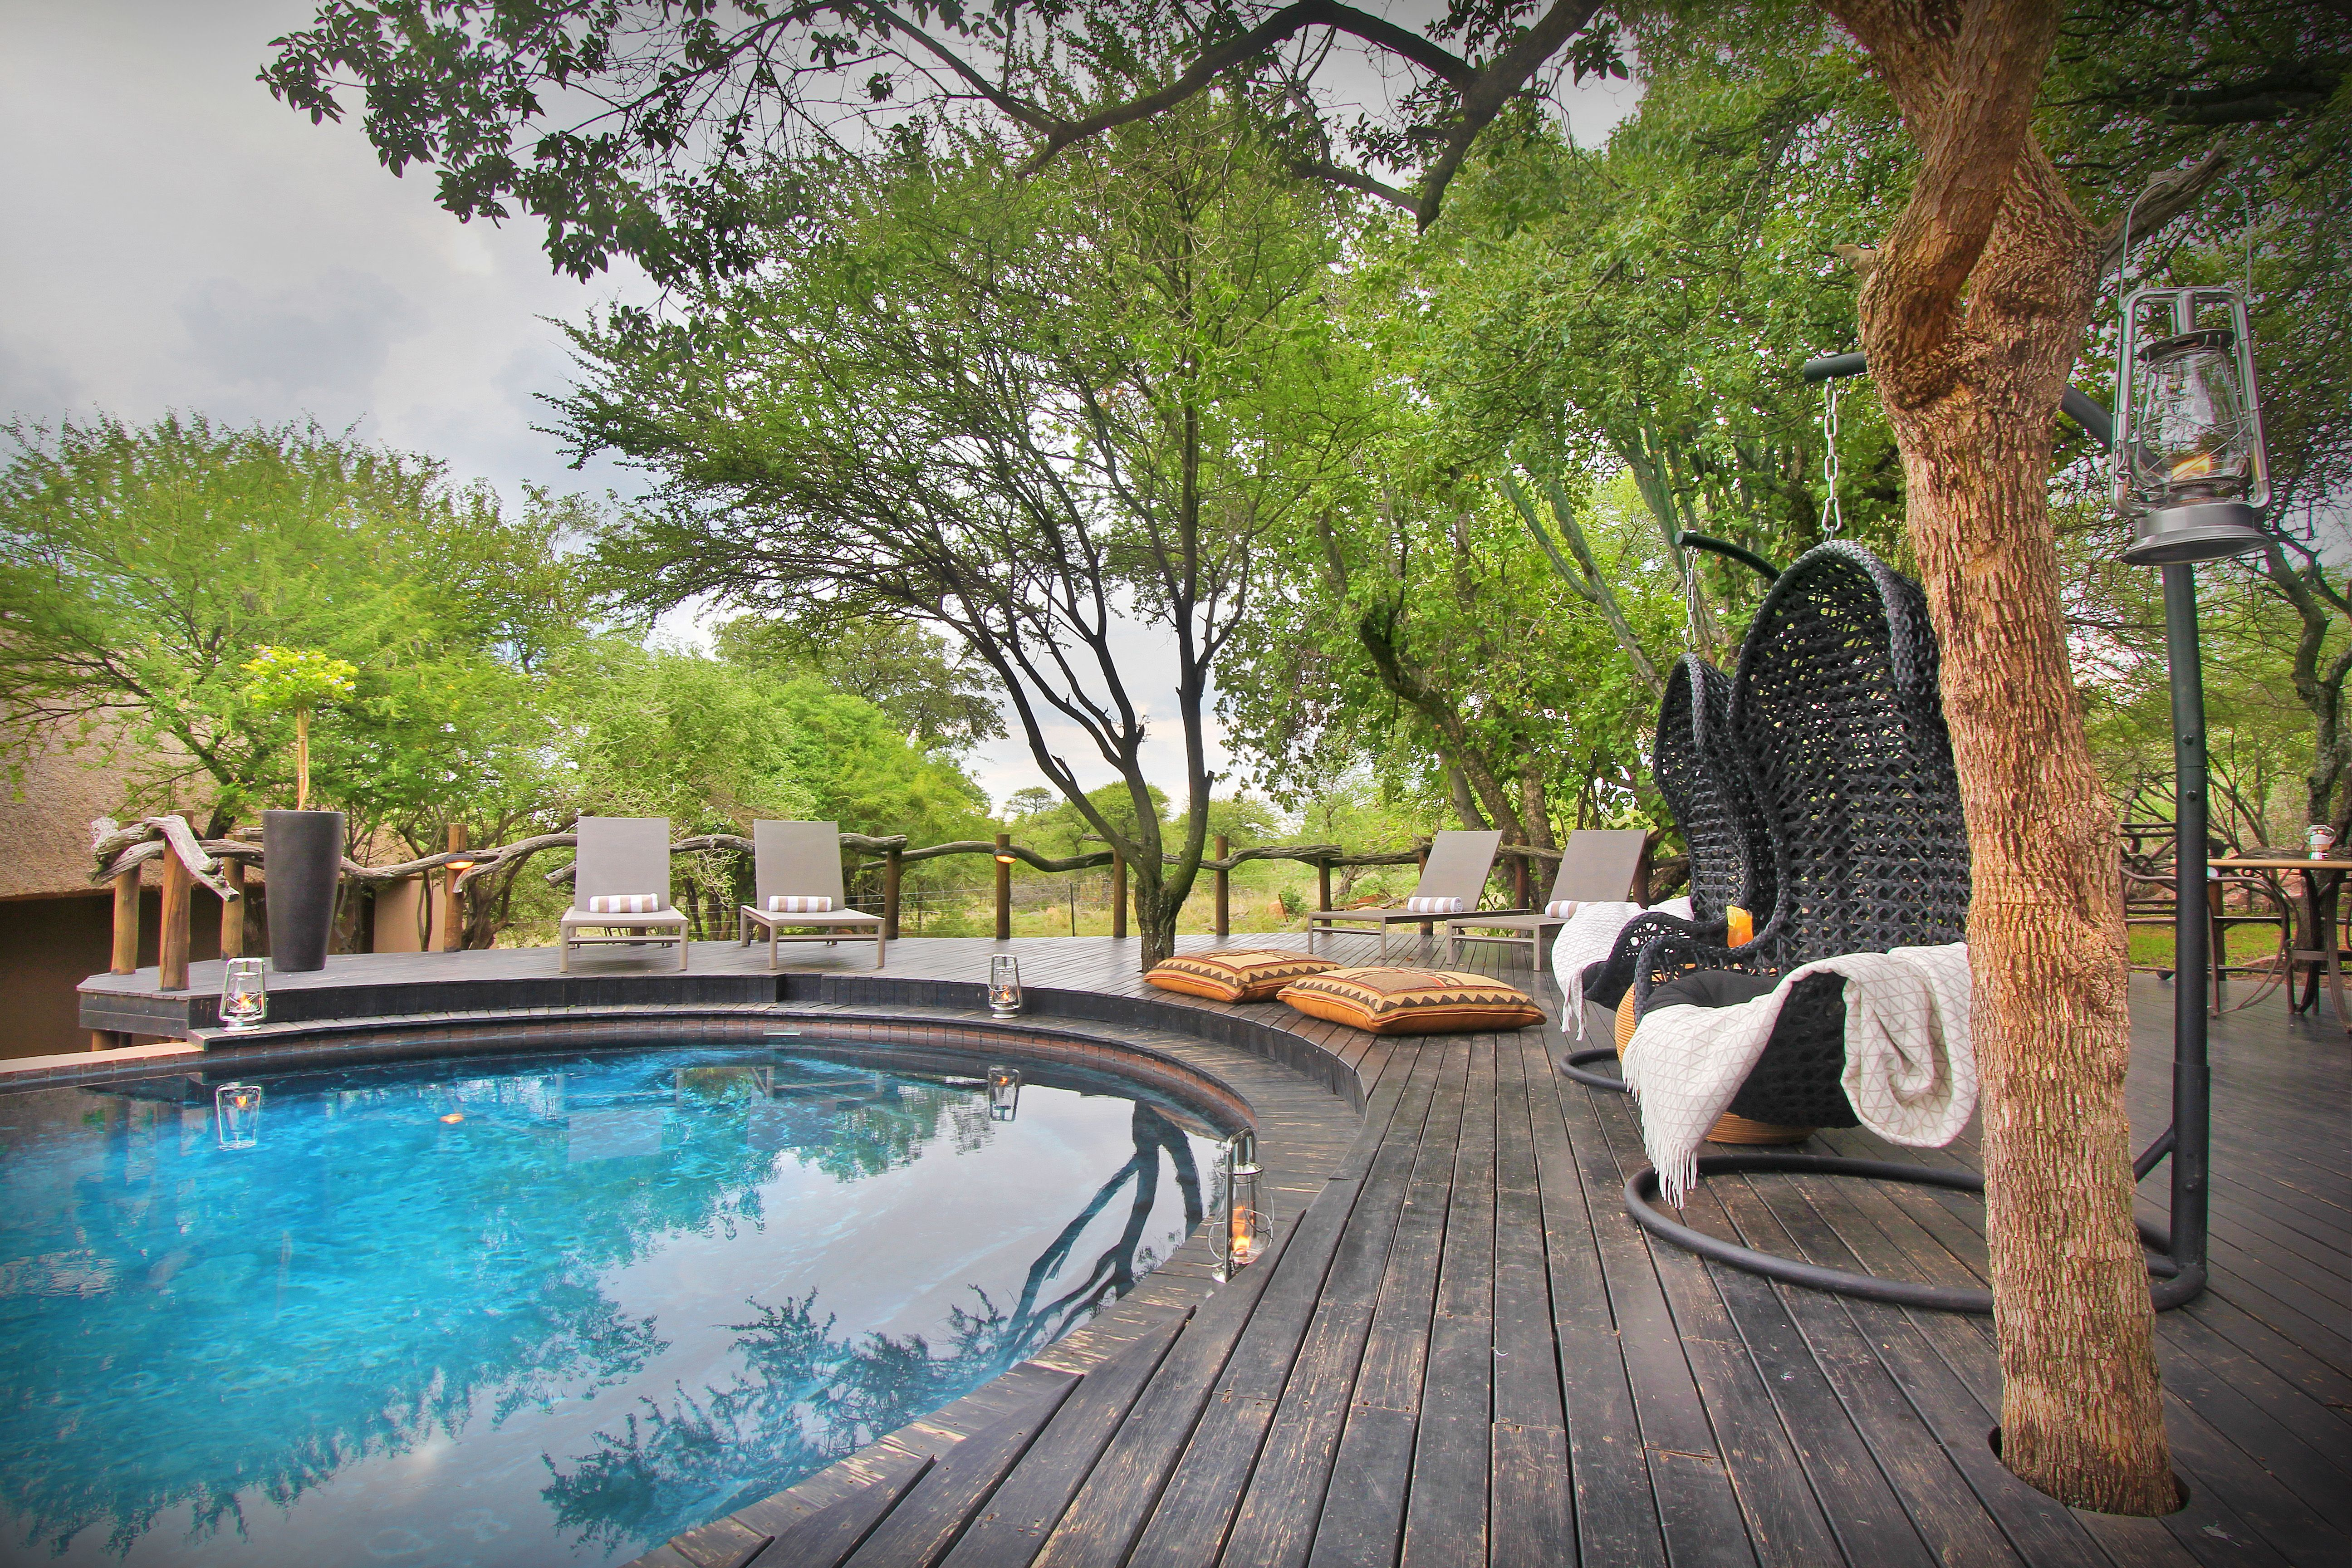 Located In The Mabalingwe Nature Reserve The Itaga Lodge Is Situated On A 12 000 Hectare Malaria Free Game Reserve That Is Home To T Game Lodge Private Games Lodges